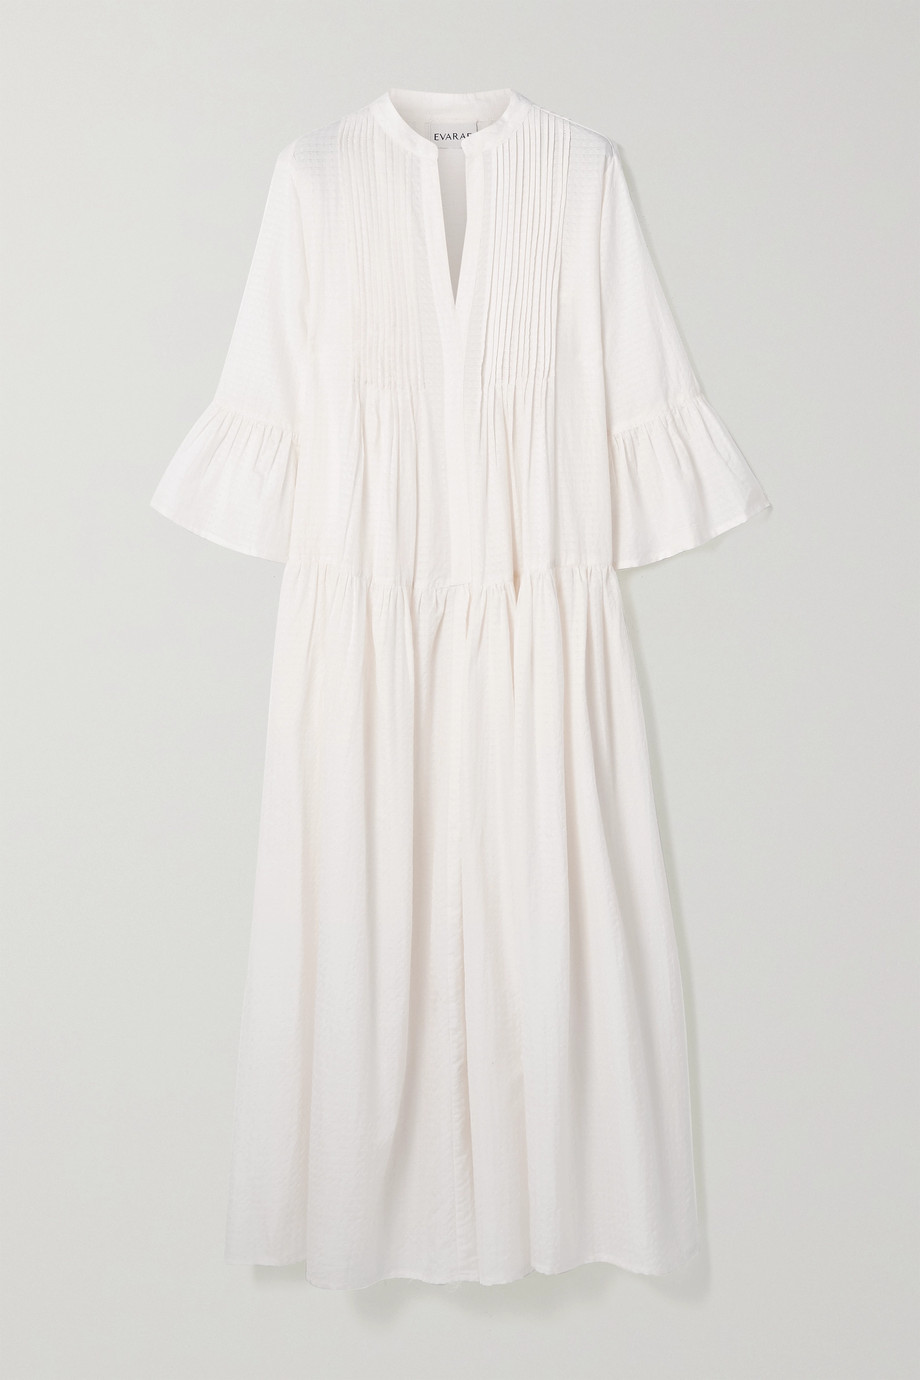 Evarae Katia tiered pintucked cotton and silk-blend maxi dress